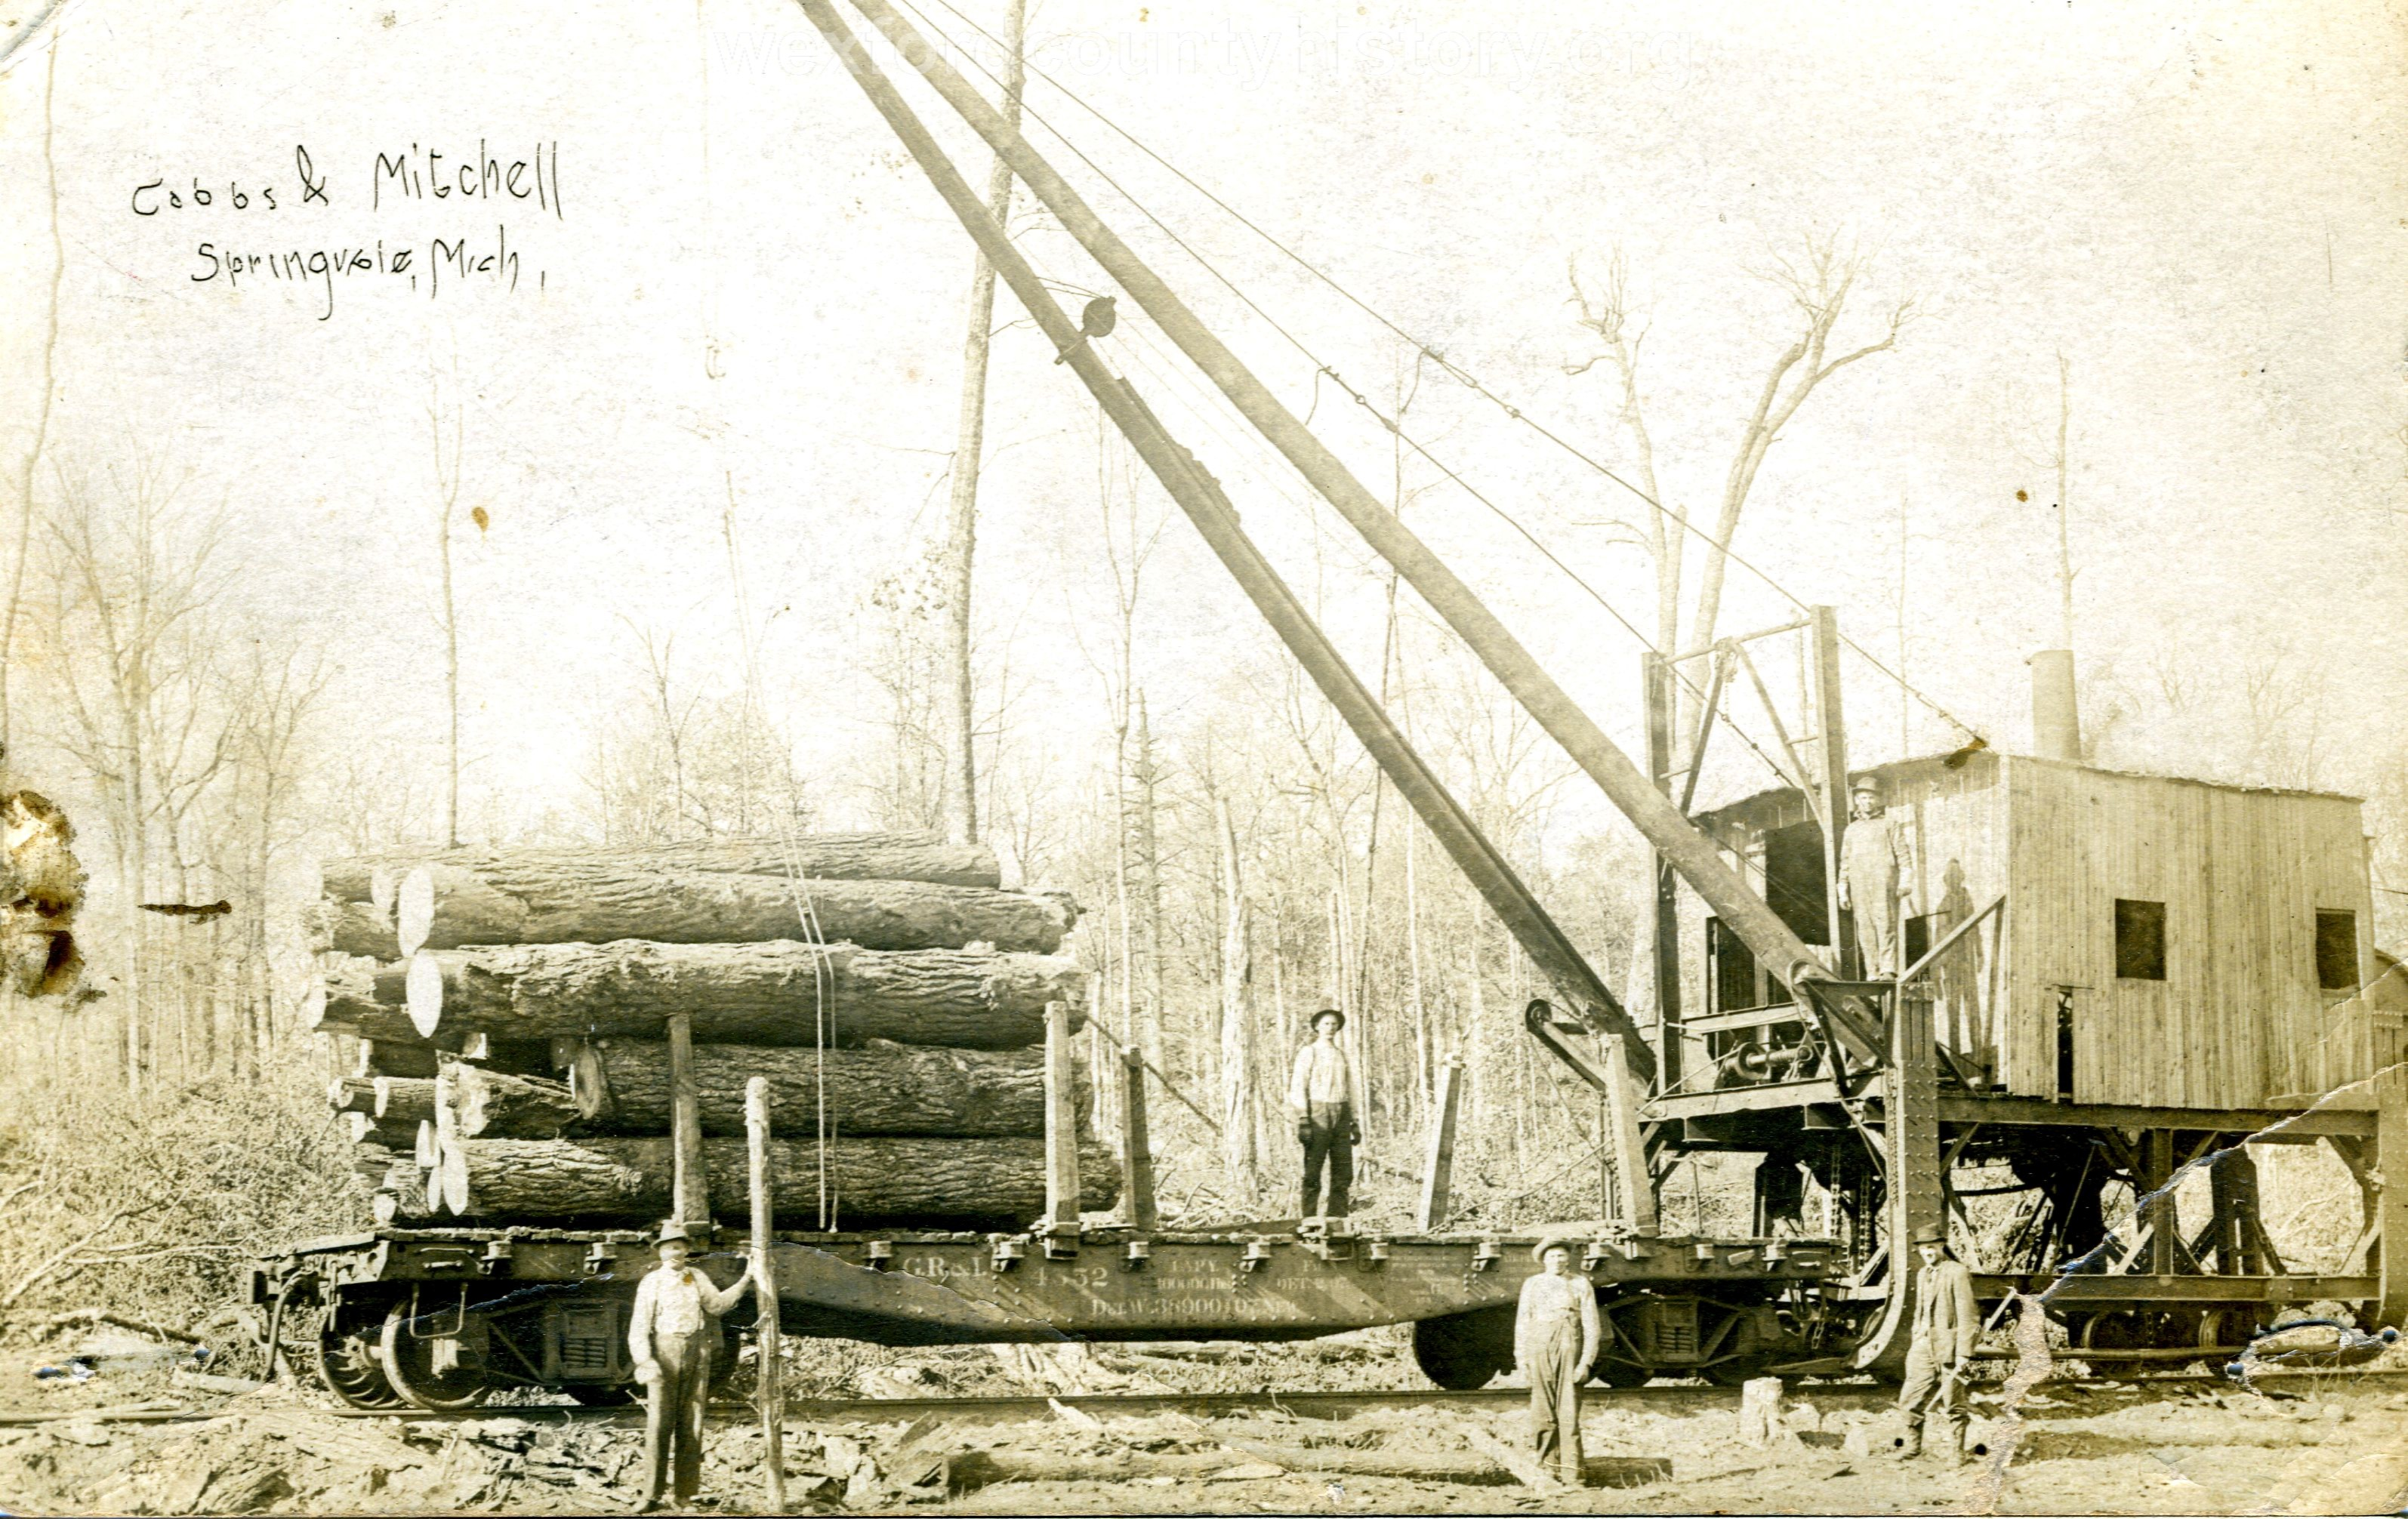 Cadillac-Lumber-loader-Cobbs-Mitchell-A-Mike-Hankwitz-collection